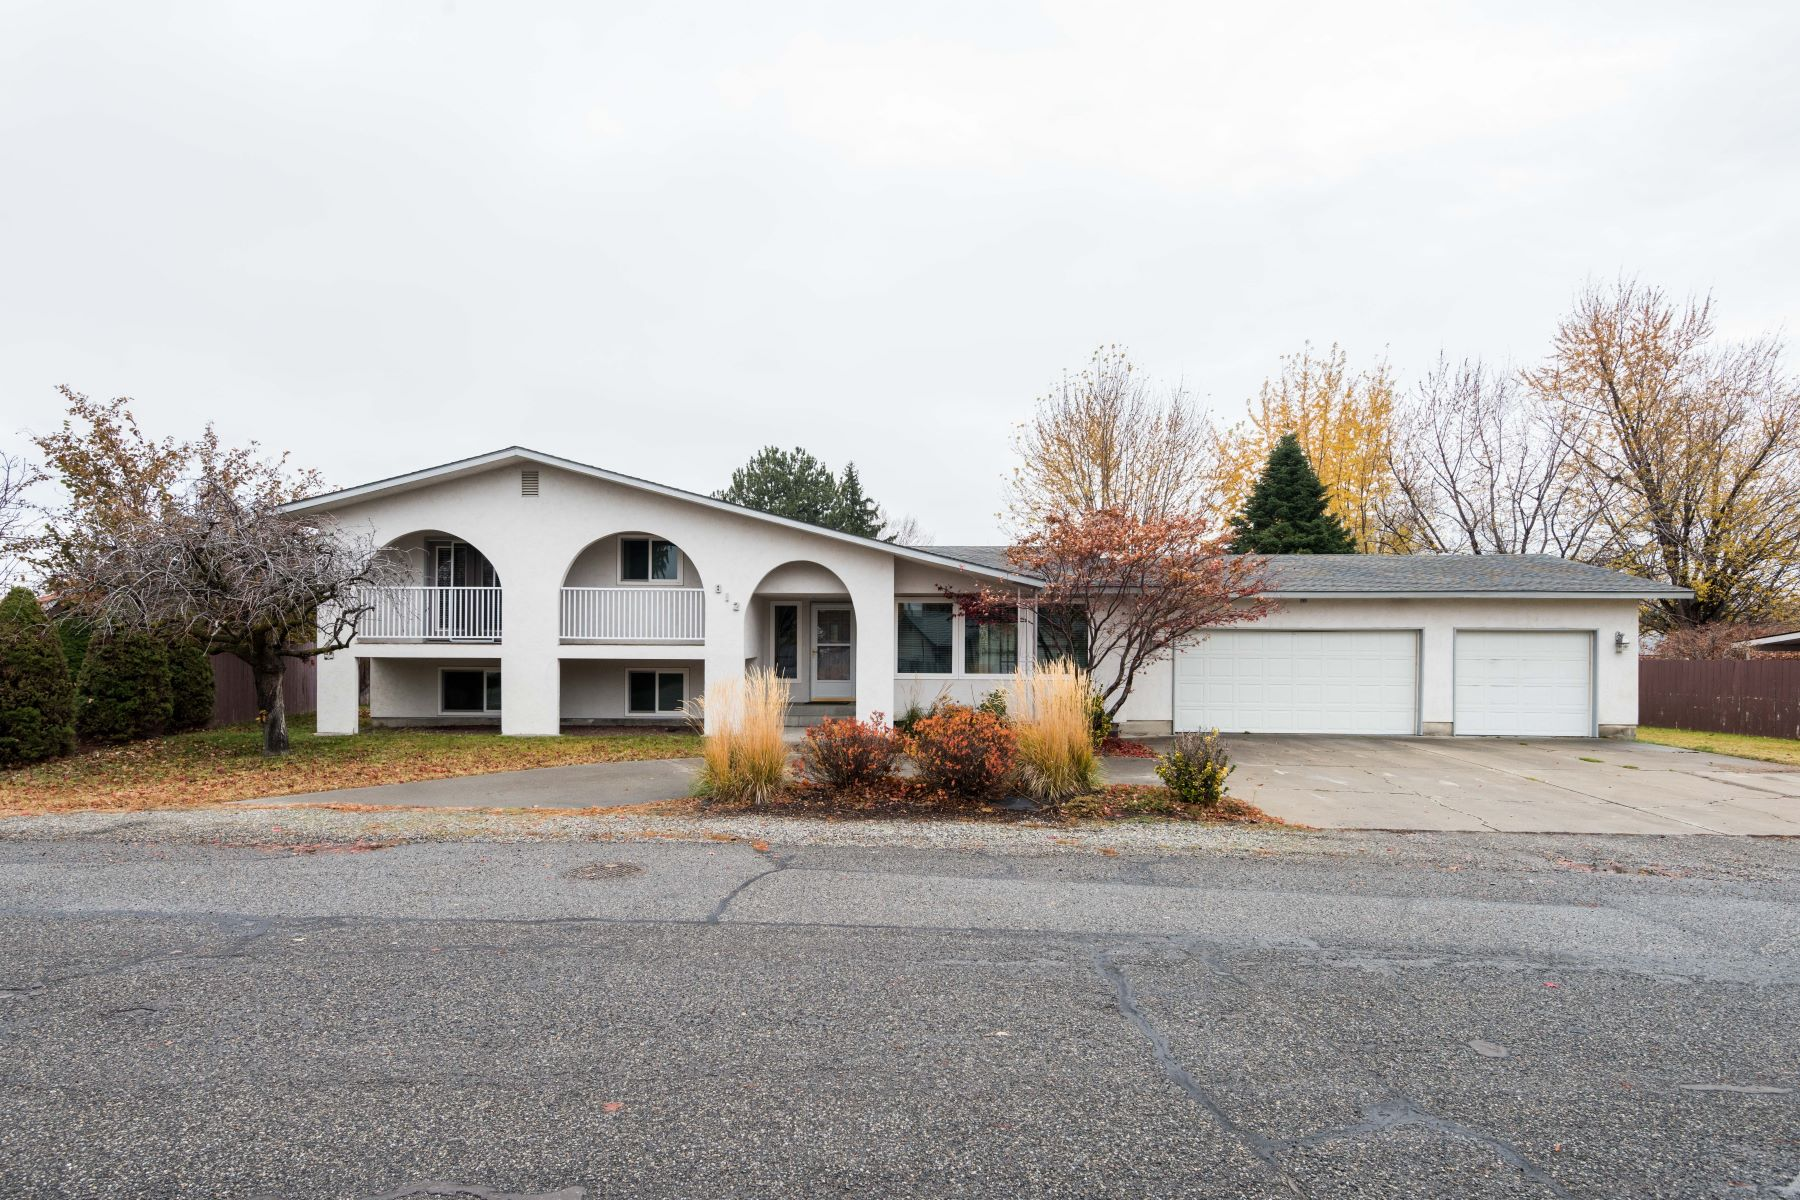 Single Family Home for Sale at Wonderful Cul-de-sac location 812 Road 35 Pasco, Washington 99301 United States